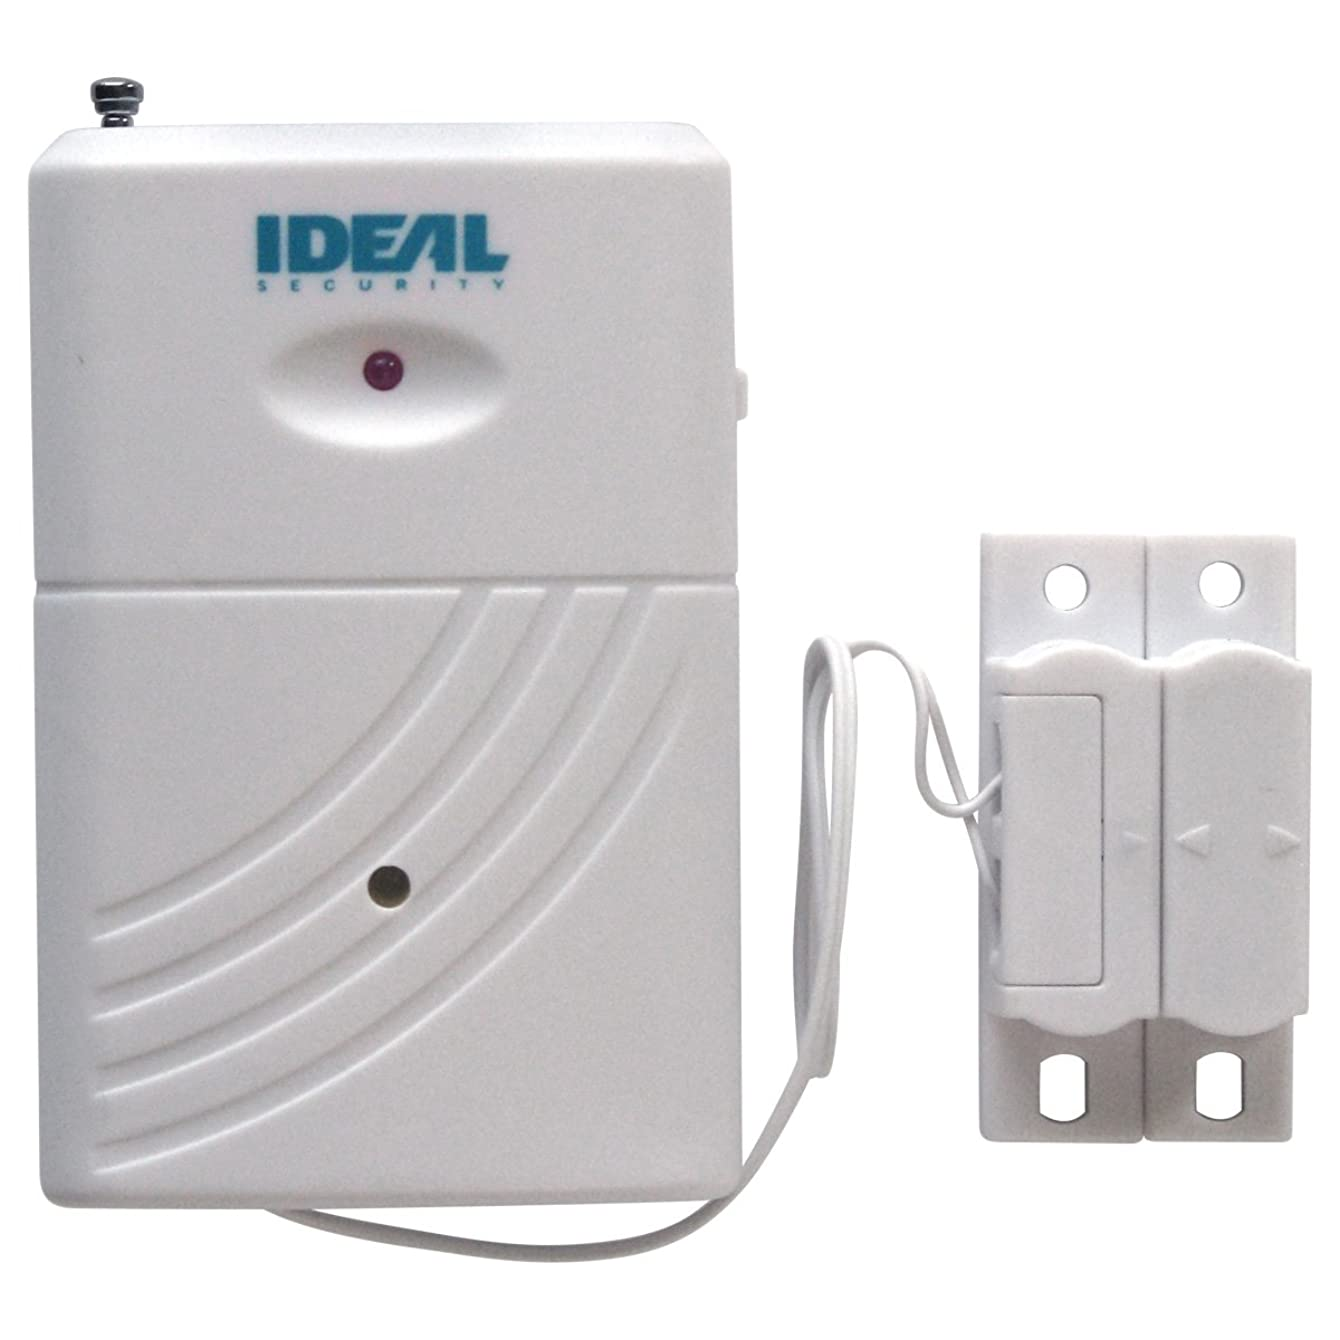 Ideal Security Inc. SK621 SK6 Wireless Door and Window Contact & Vibration With With Wired LeadBuilt-in 105dB Alarm